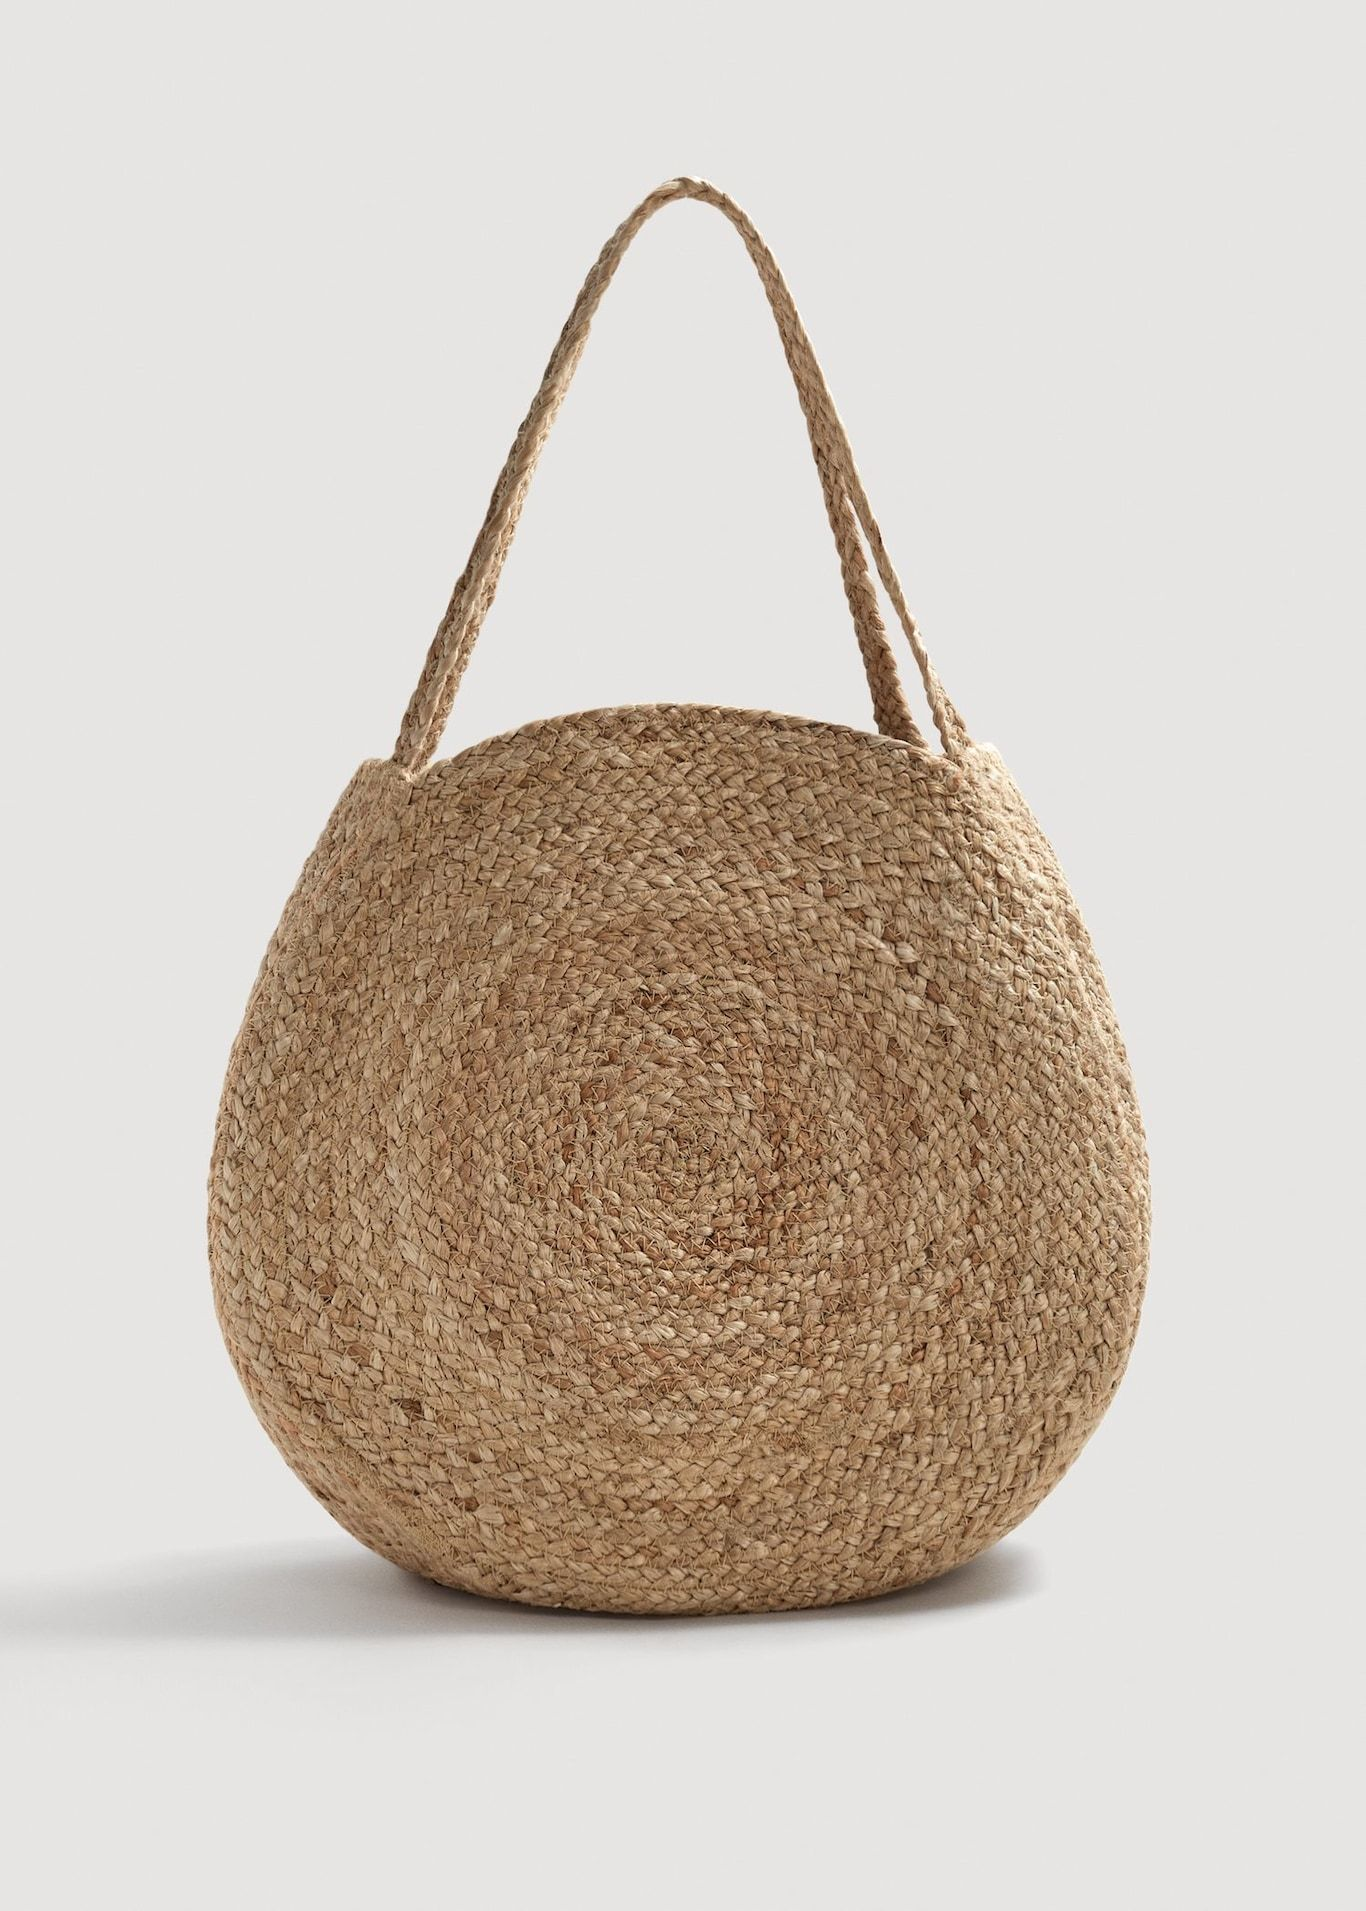 Jute Shopper Bag Women In 2018 Bag Hag Pinterest Bags Jute